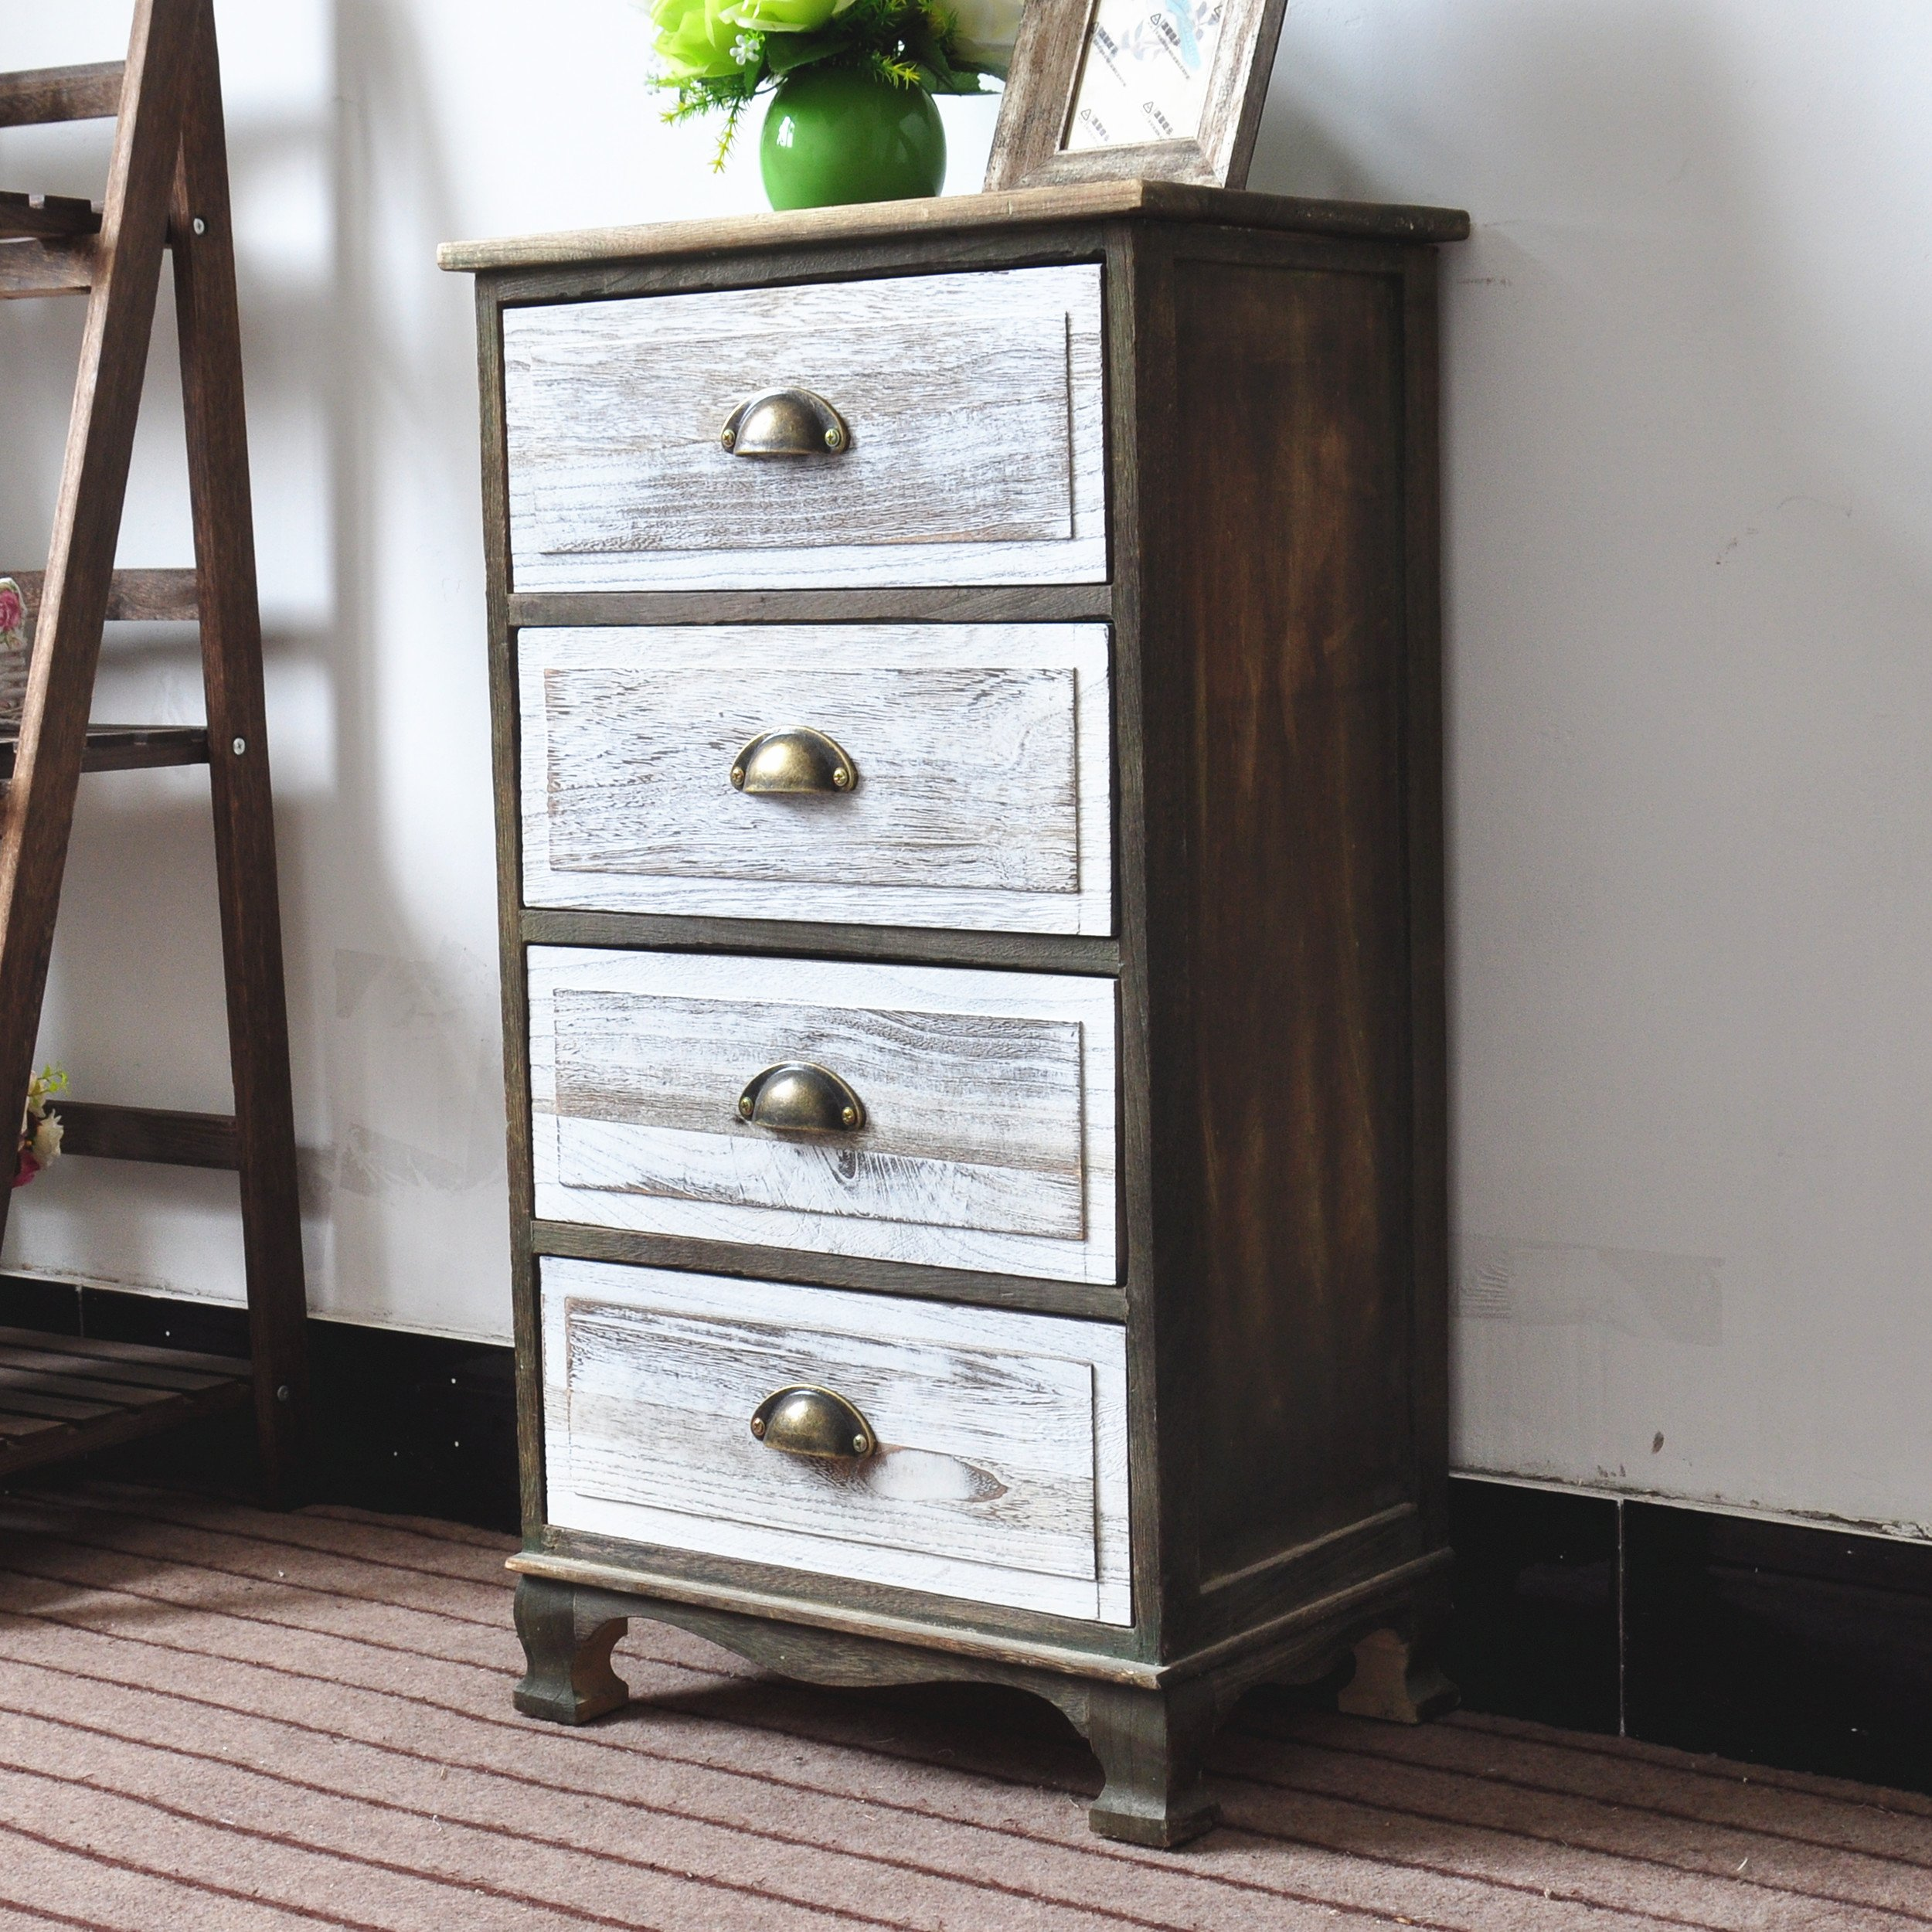 DL furniture - Fully Assembled 2 Tone Finish Night Stand End Table Storage Wood Cabinet | 4 Drawers